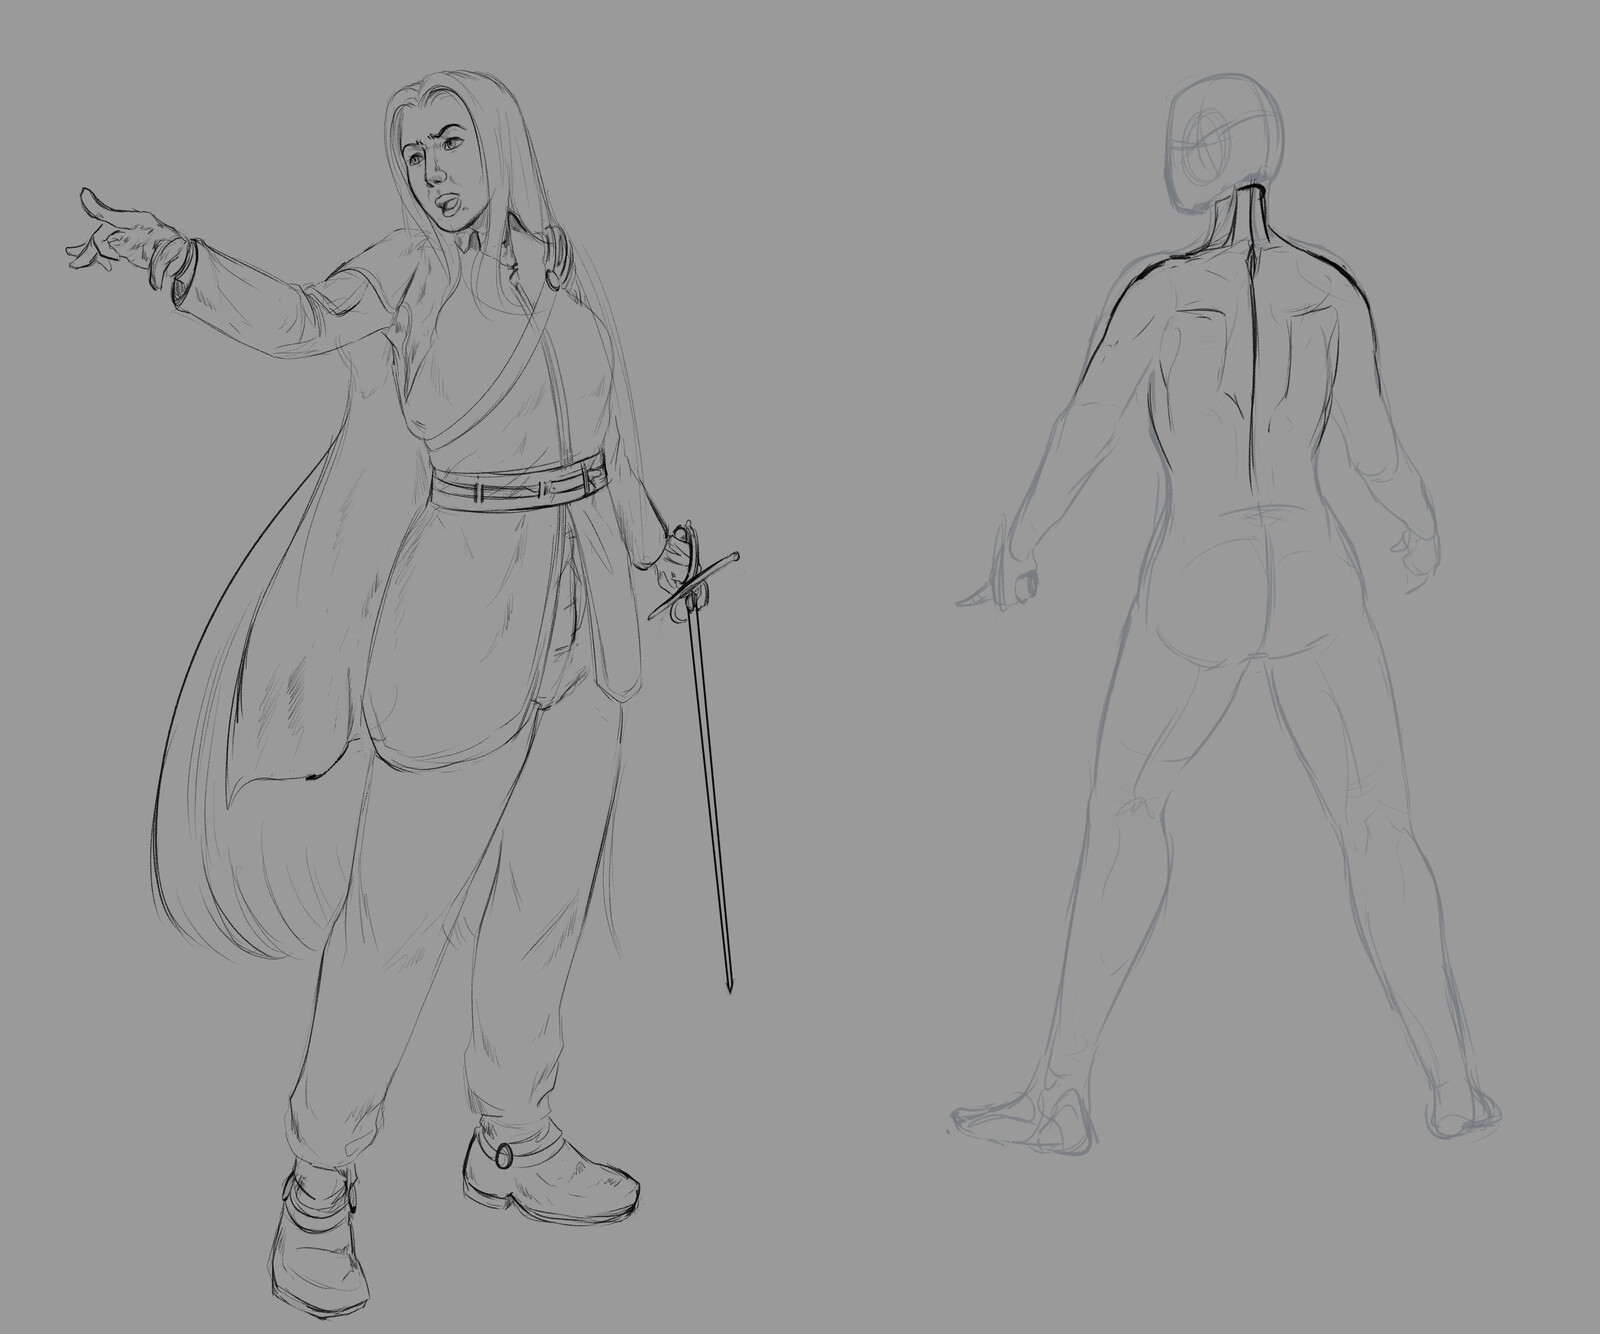 in the original concepts she would be a kind of '' shadow '' of a character of mine in another story, where in the end it would be the great internal conflict.